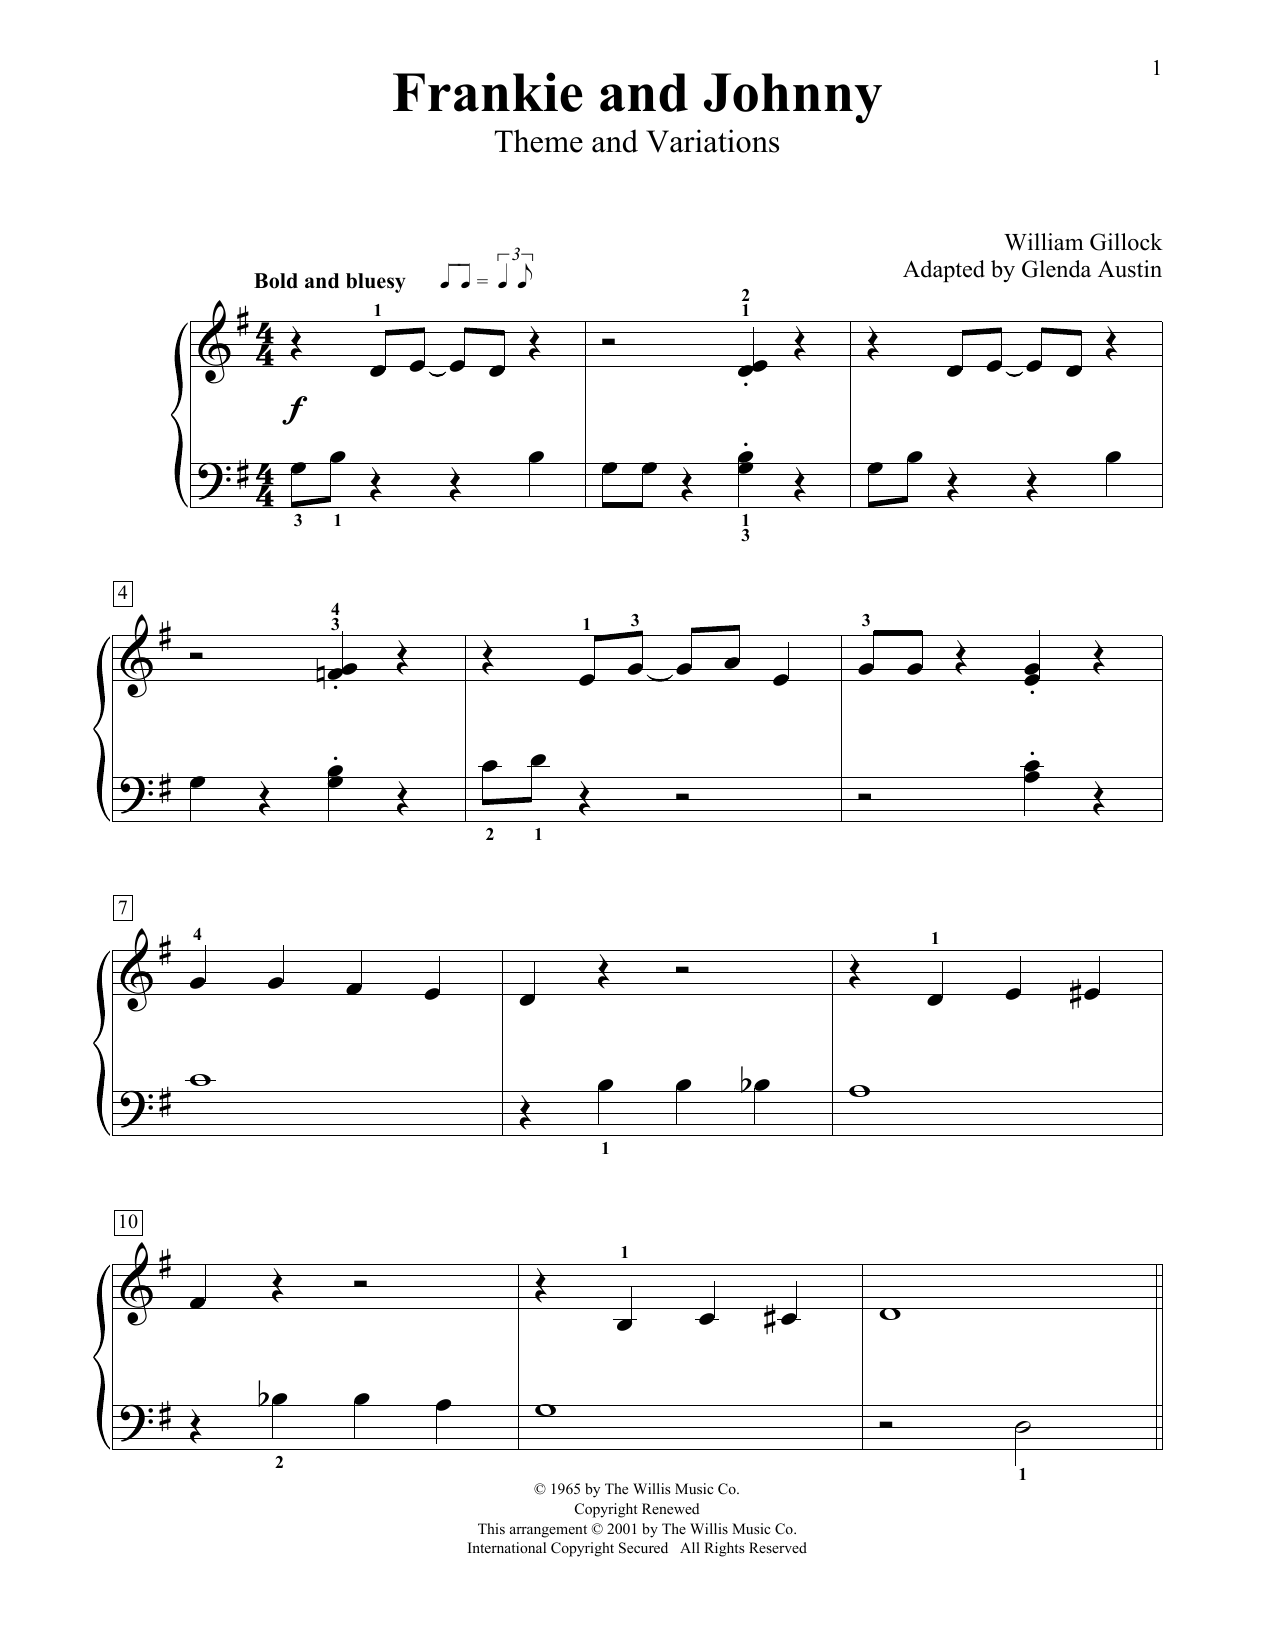 William Gillock Frankie And Johnny (Theme And Variations) (Simplified) (adapted by Glenda Austin) sheet music notes printable PDF score